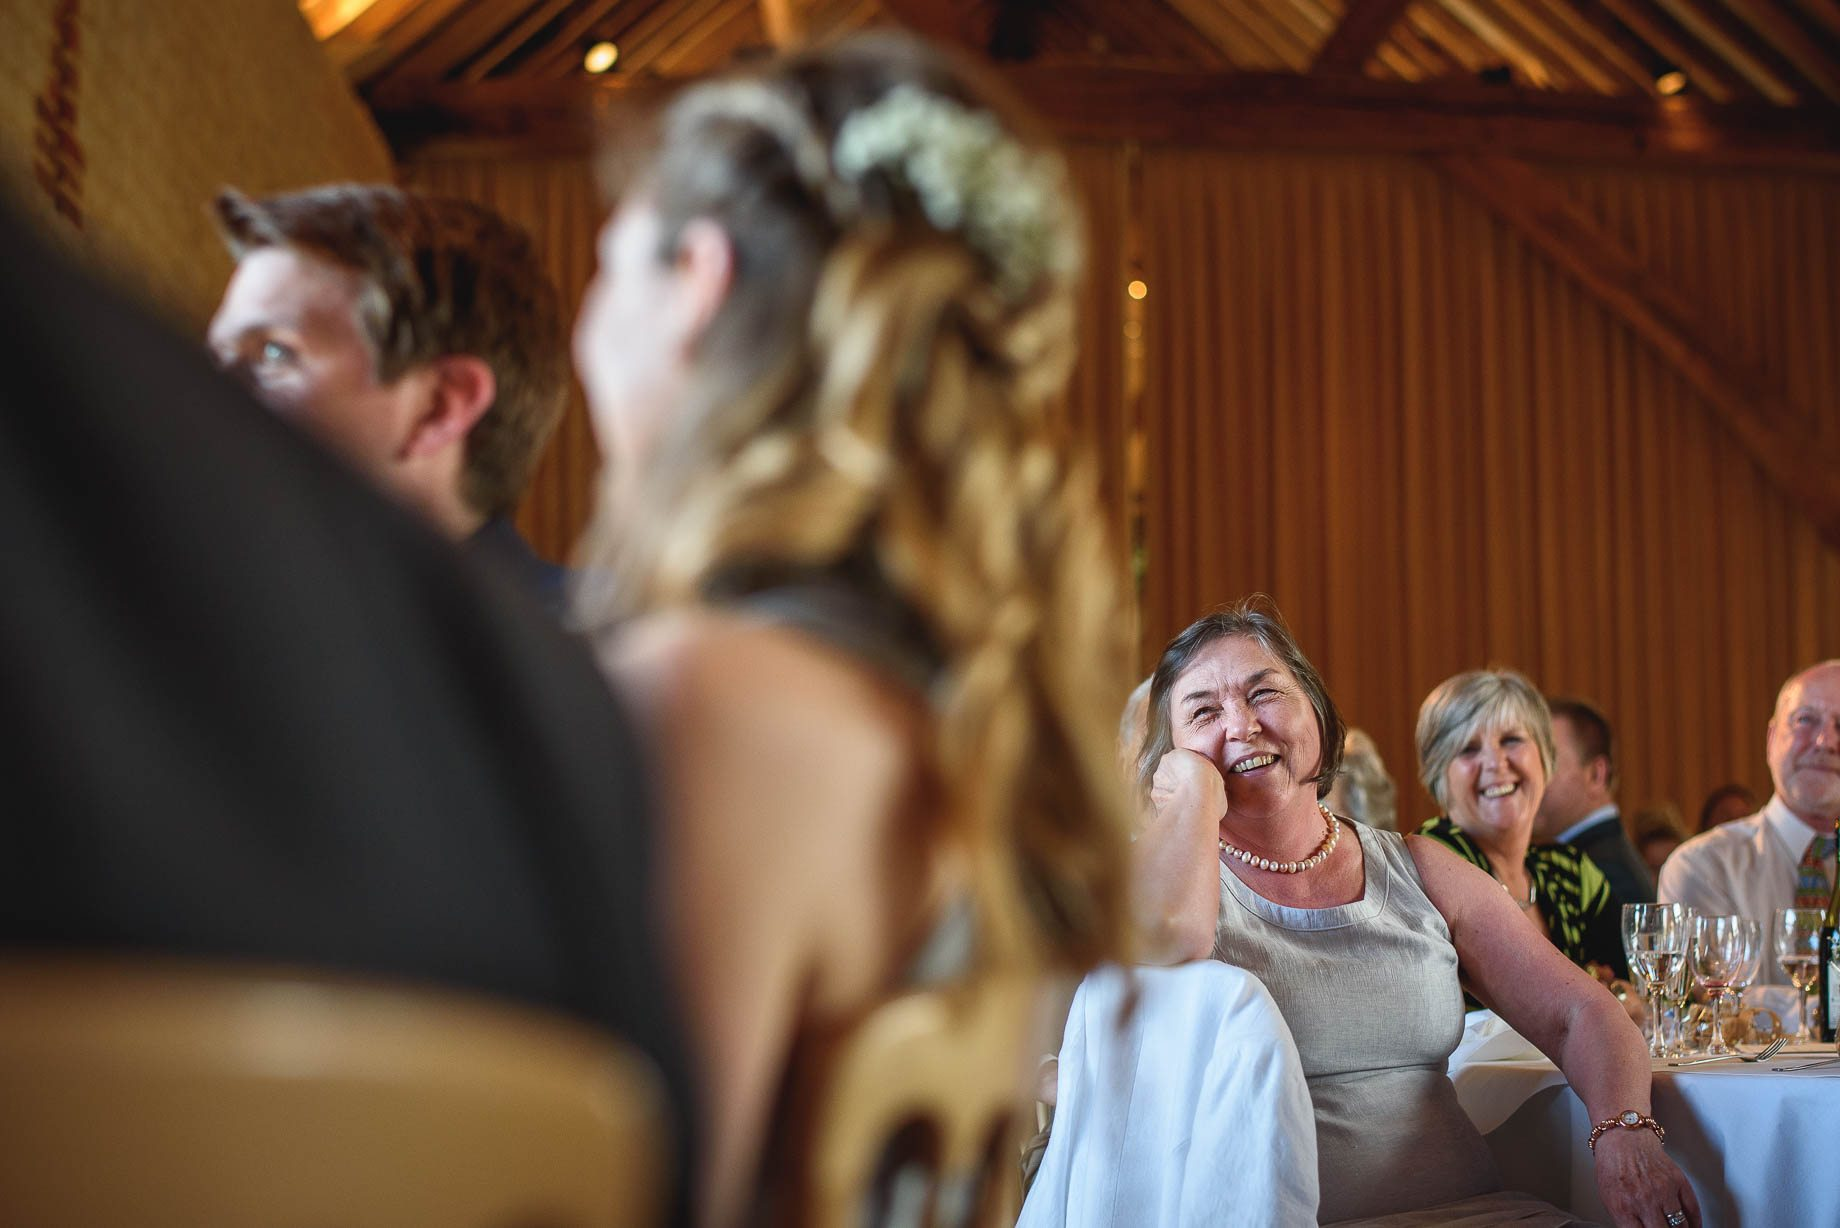 Bury Court Barn wedding photography by Guy Collier - Heather and Pat (129 of 170)